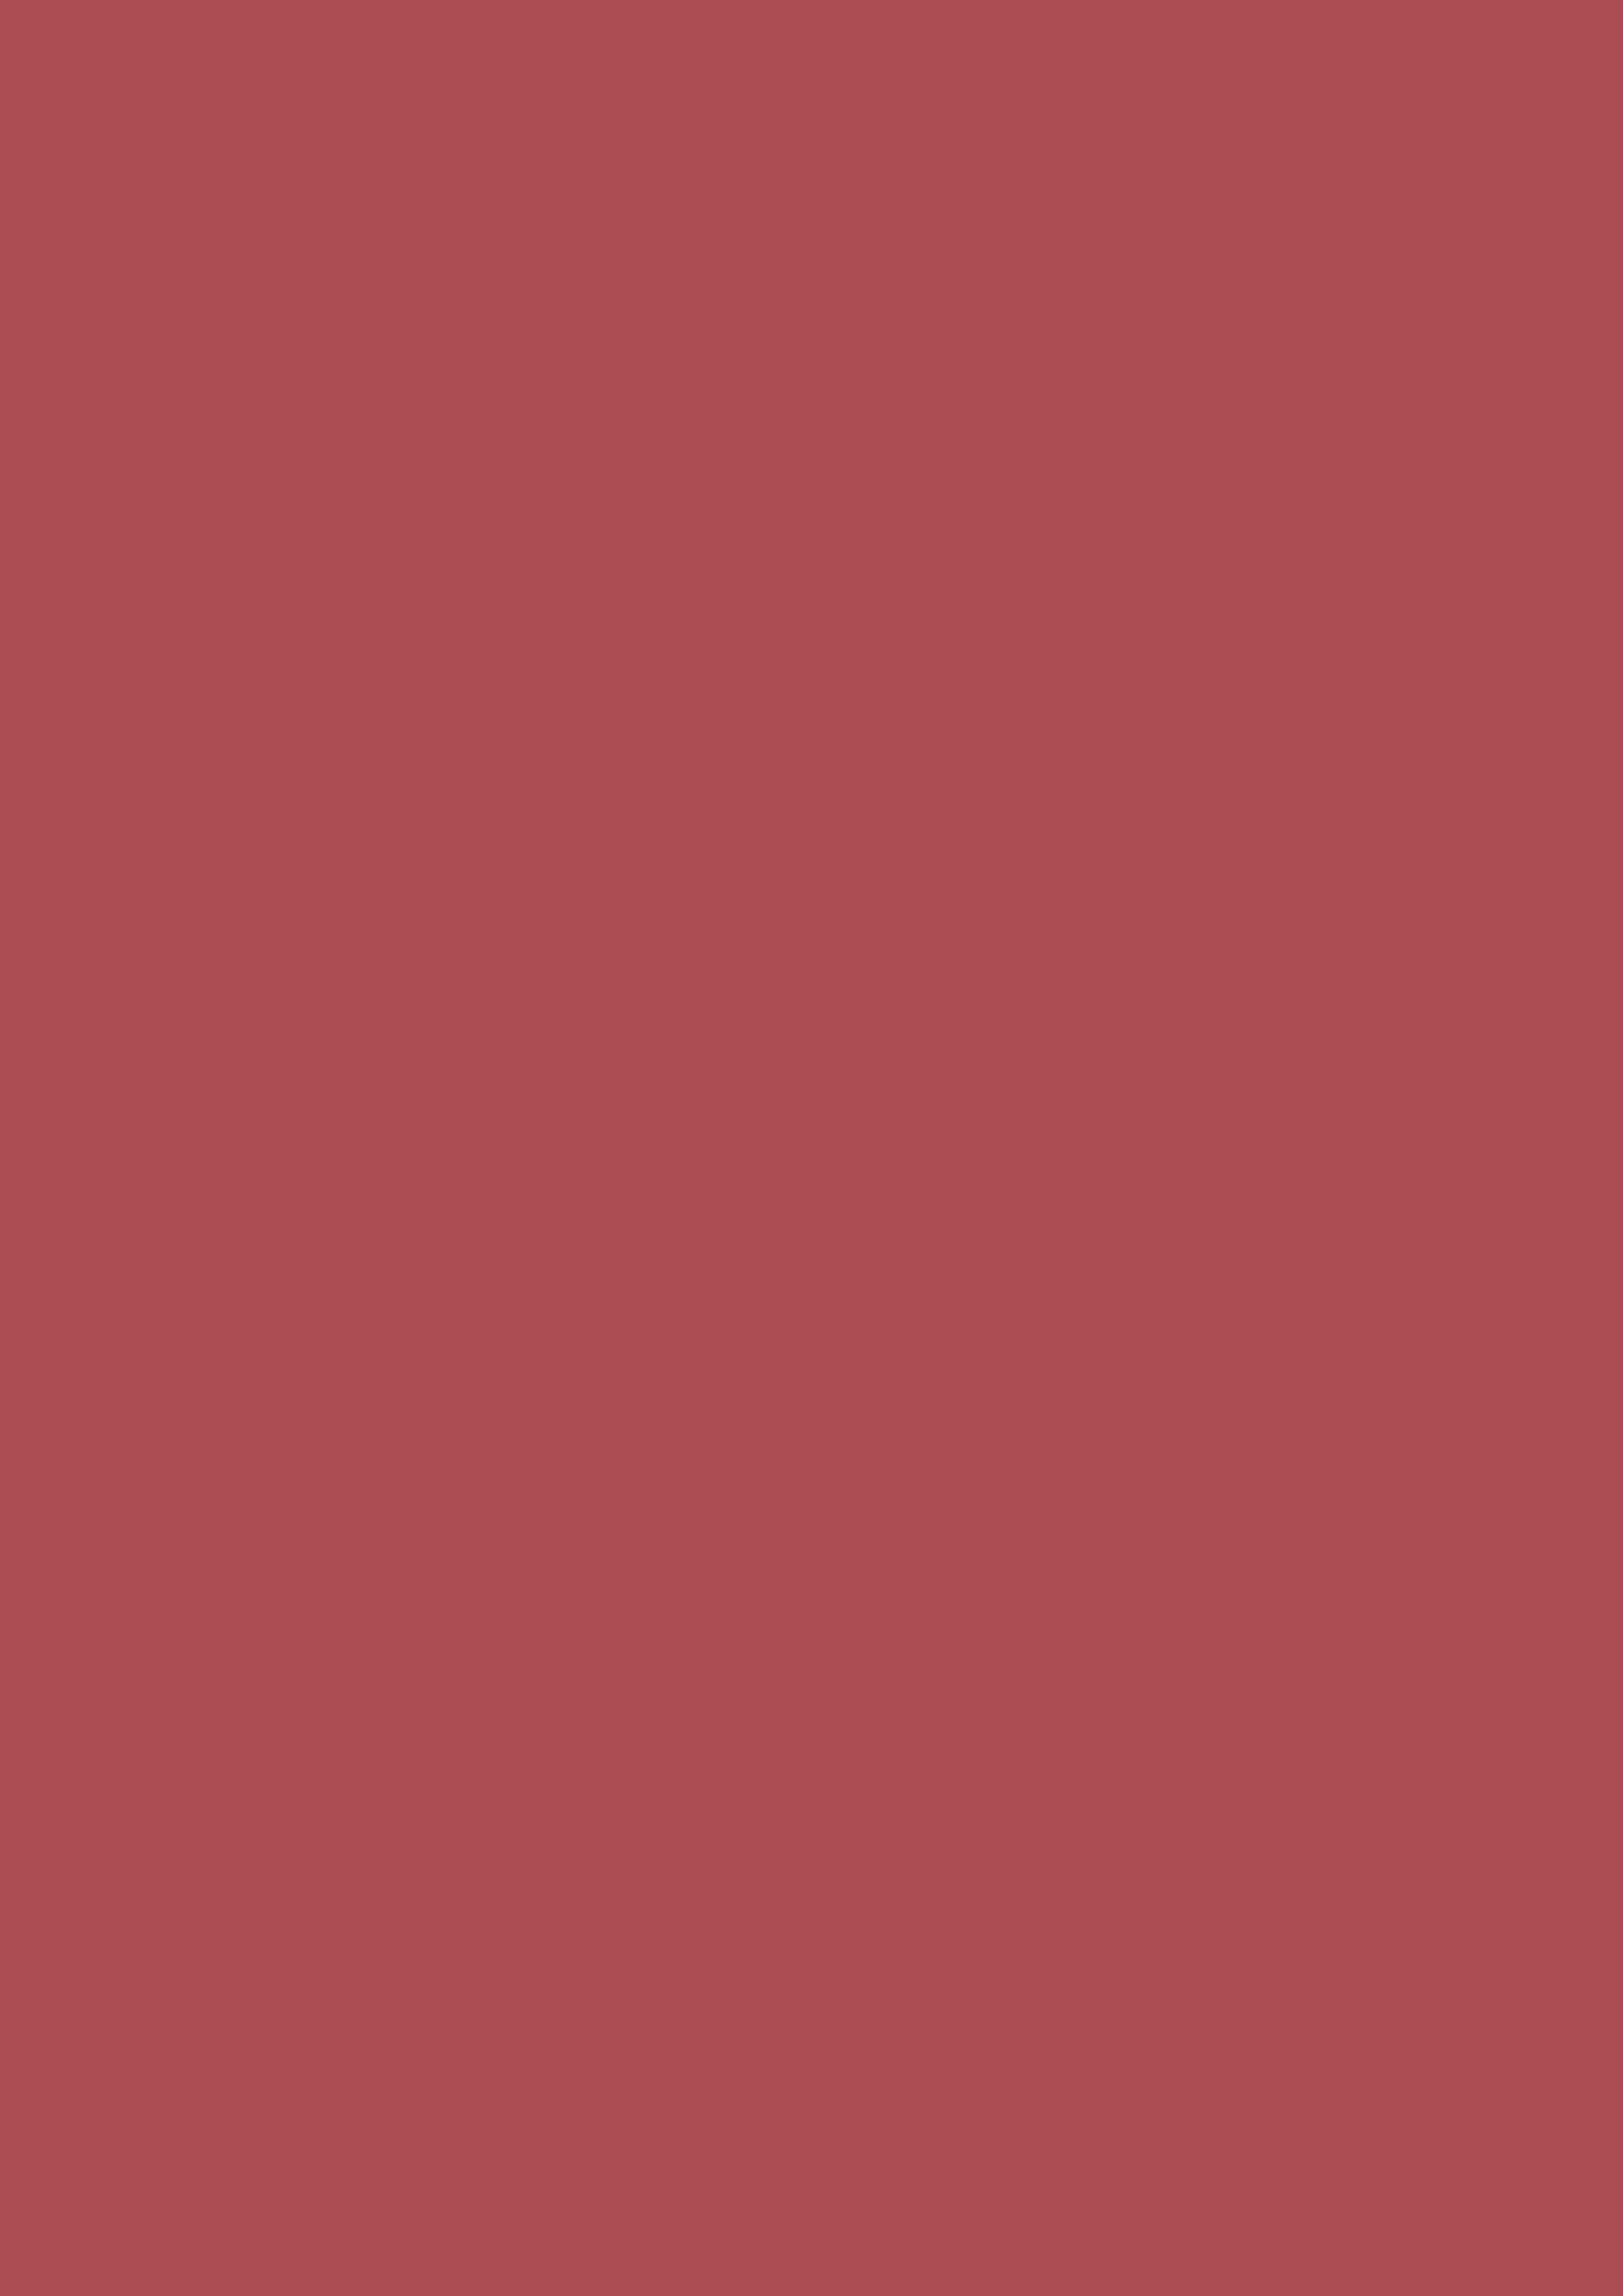 2480x3508 English Red Solid Color Background